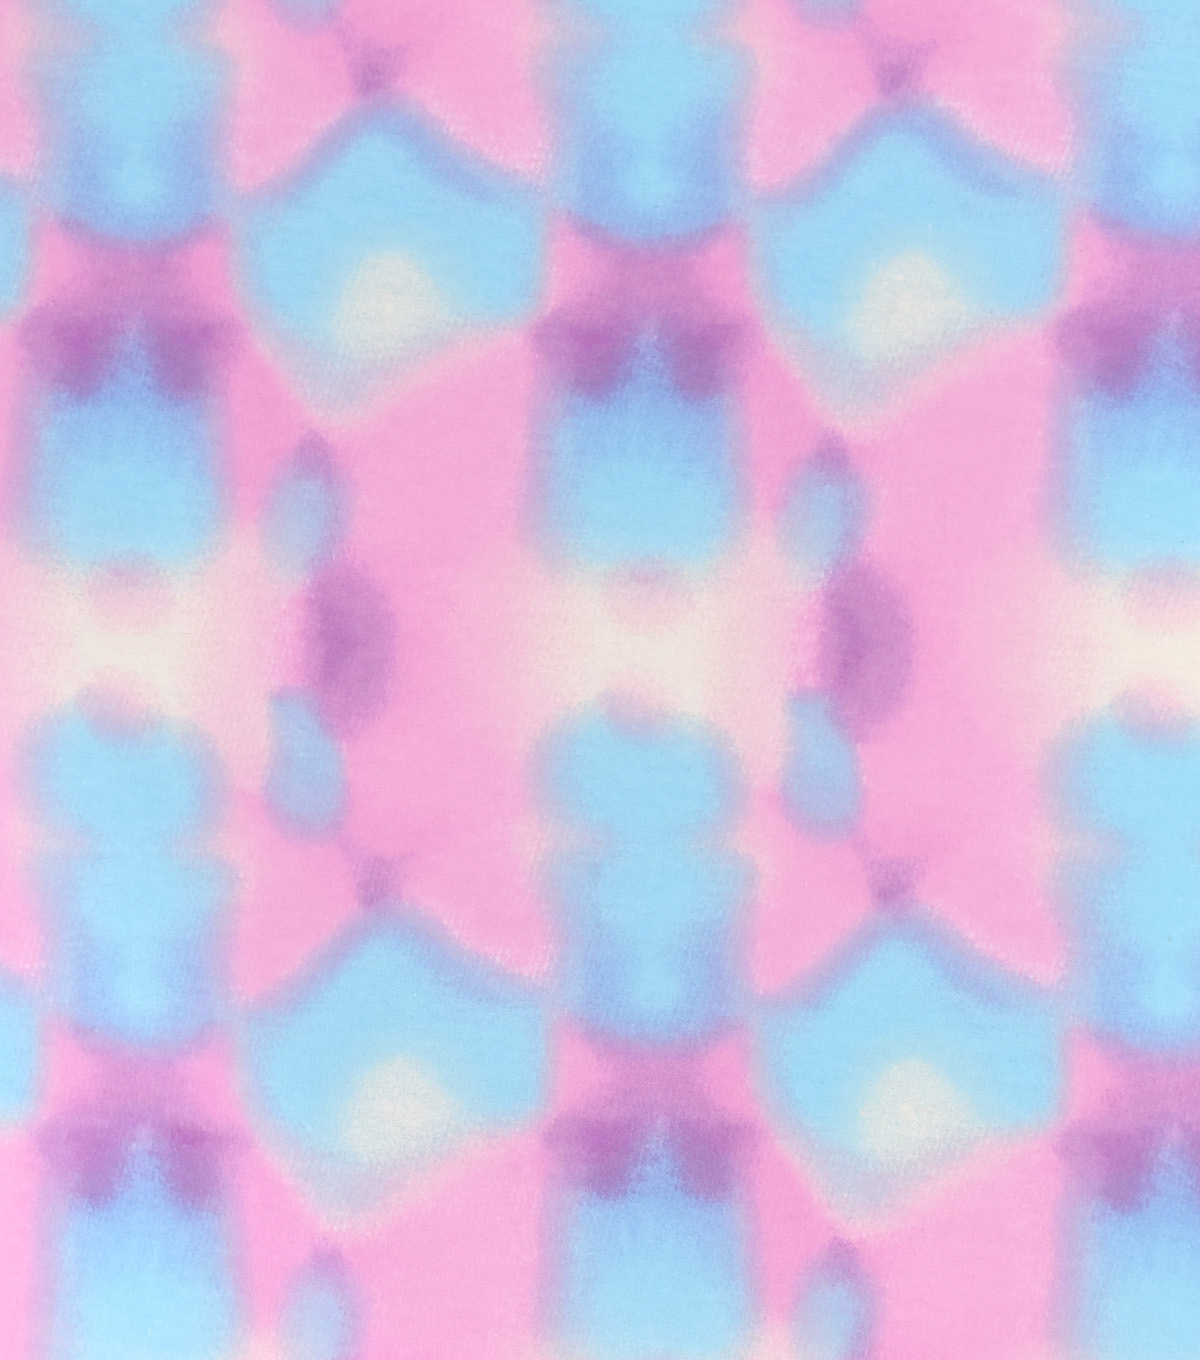 Snuggle Flannel Fabric-Pink Blue Watercolor Tie Dye